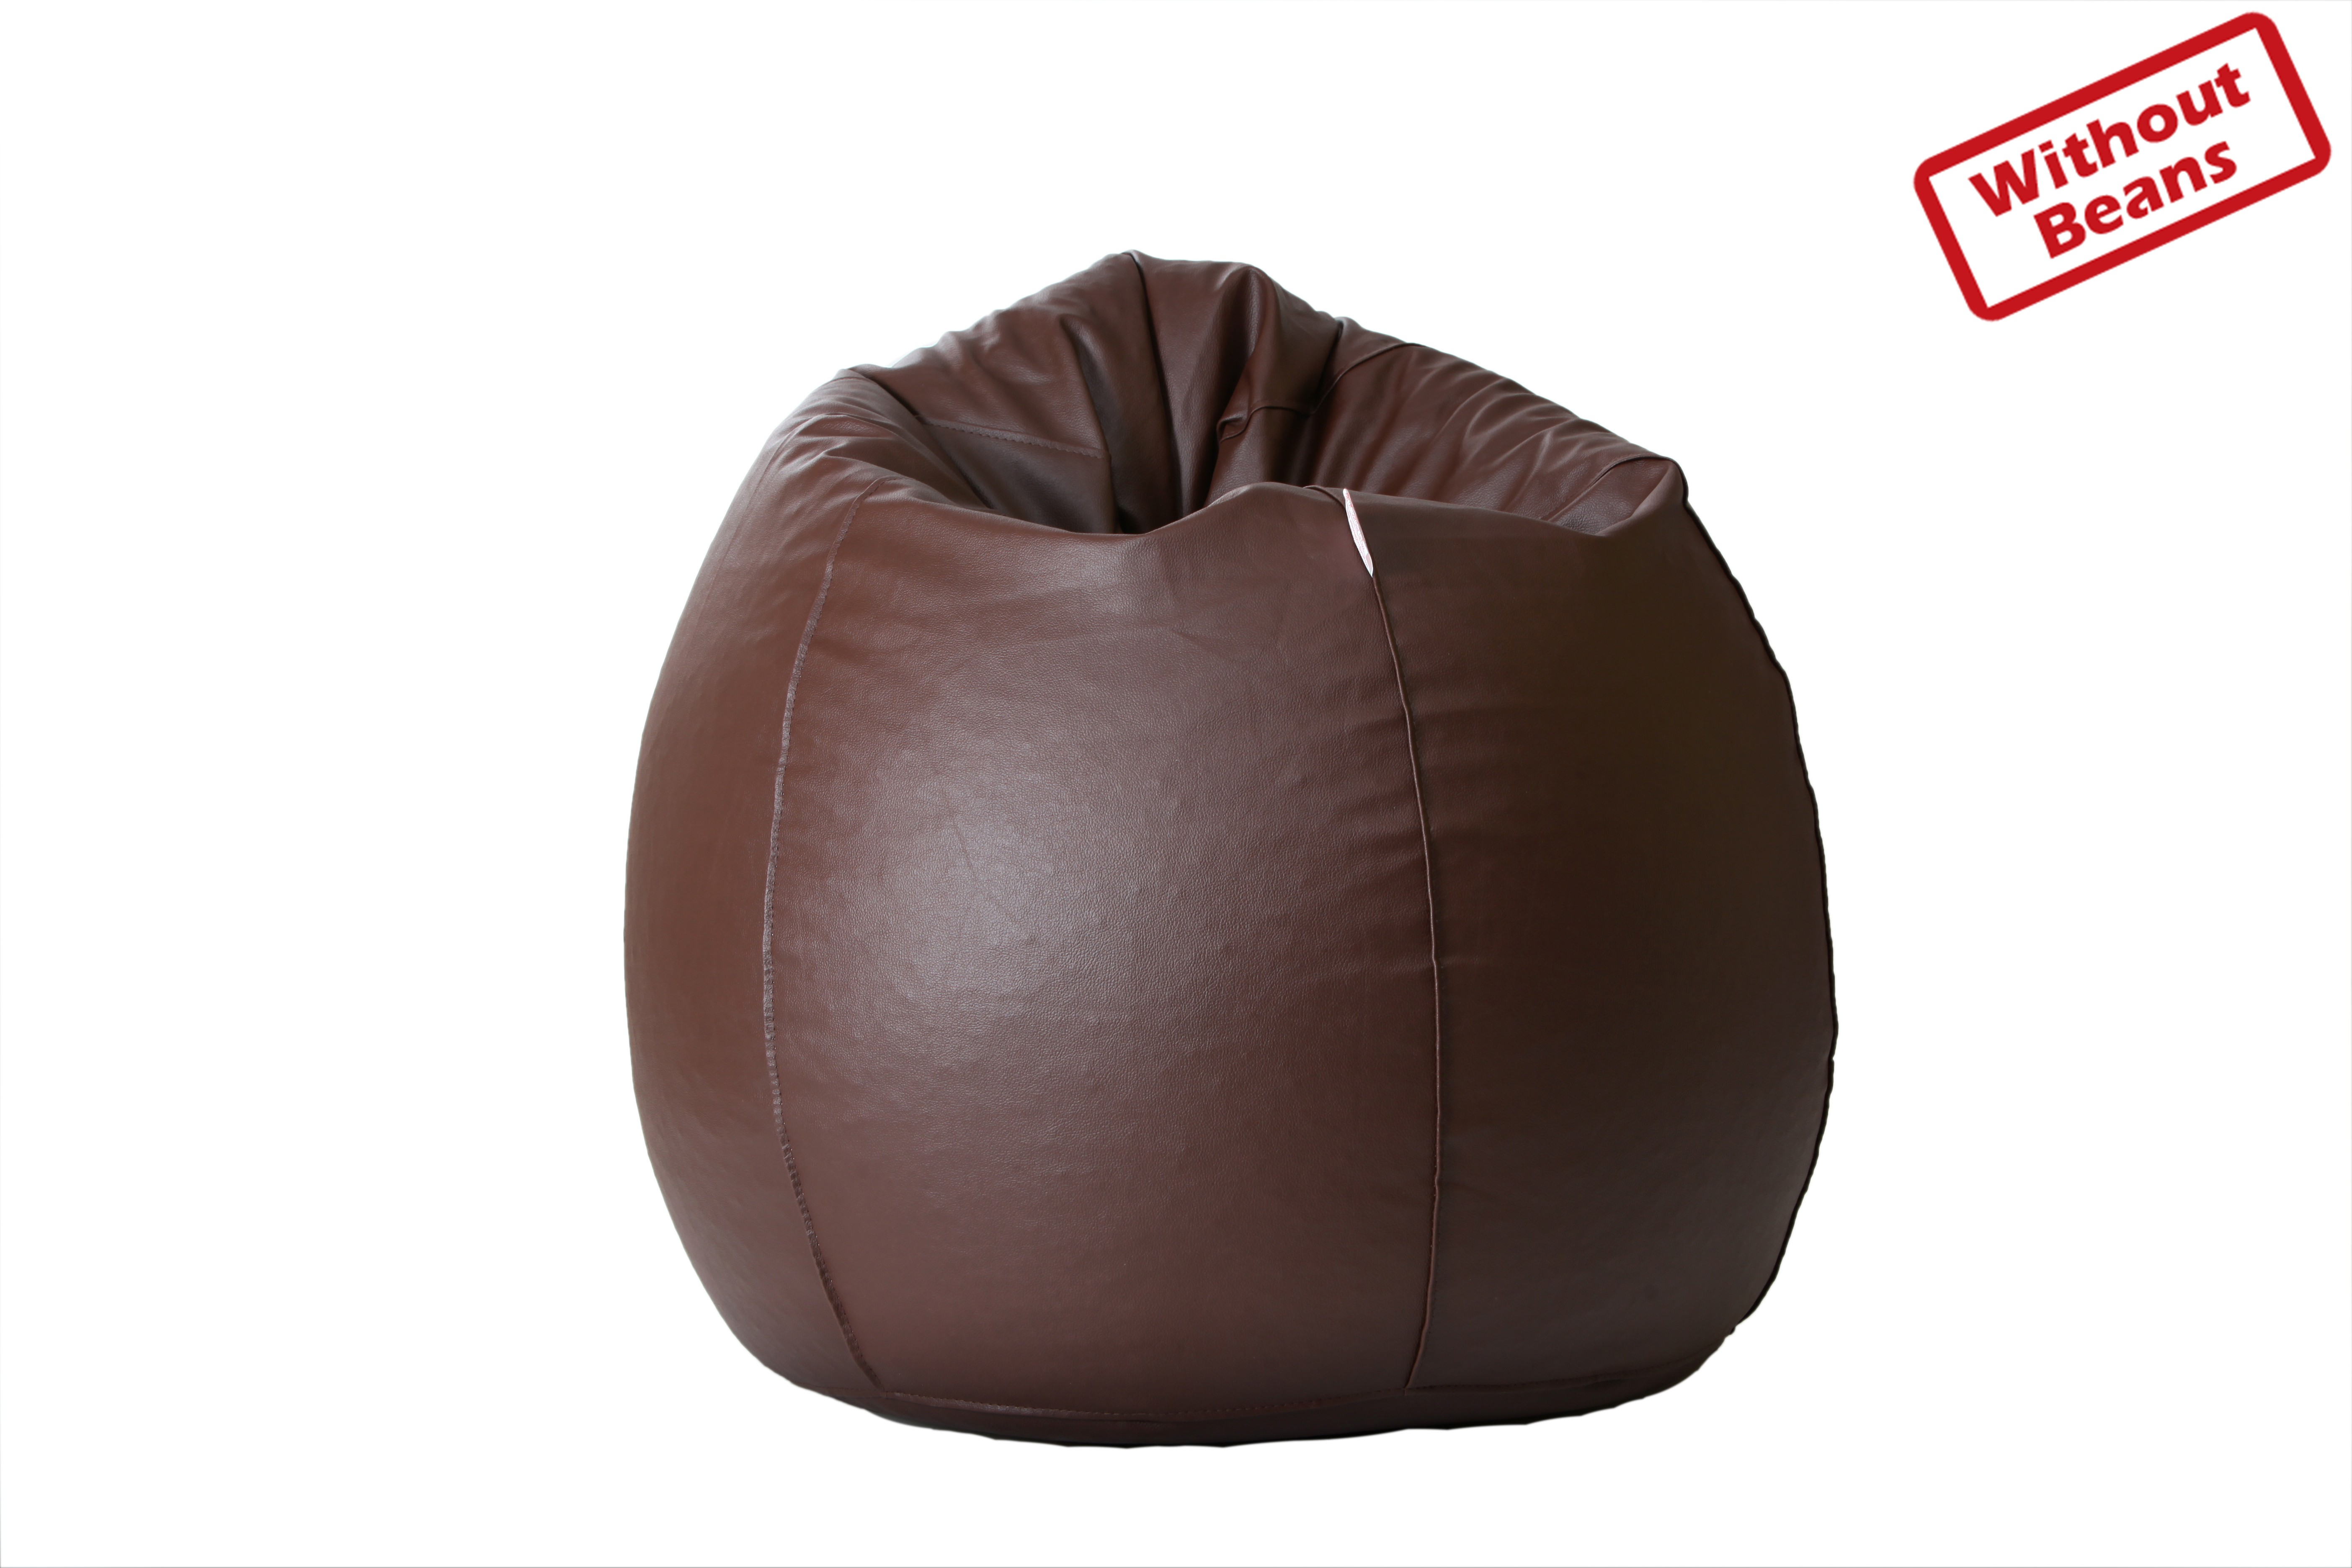 Comfy Bean Bags Xl Teardrop Bean Bag Cover Without